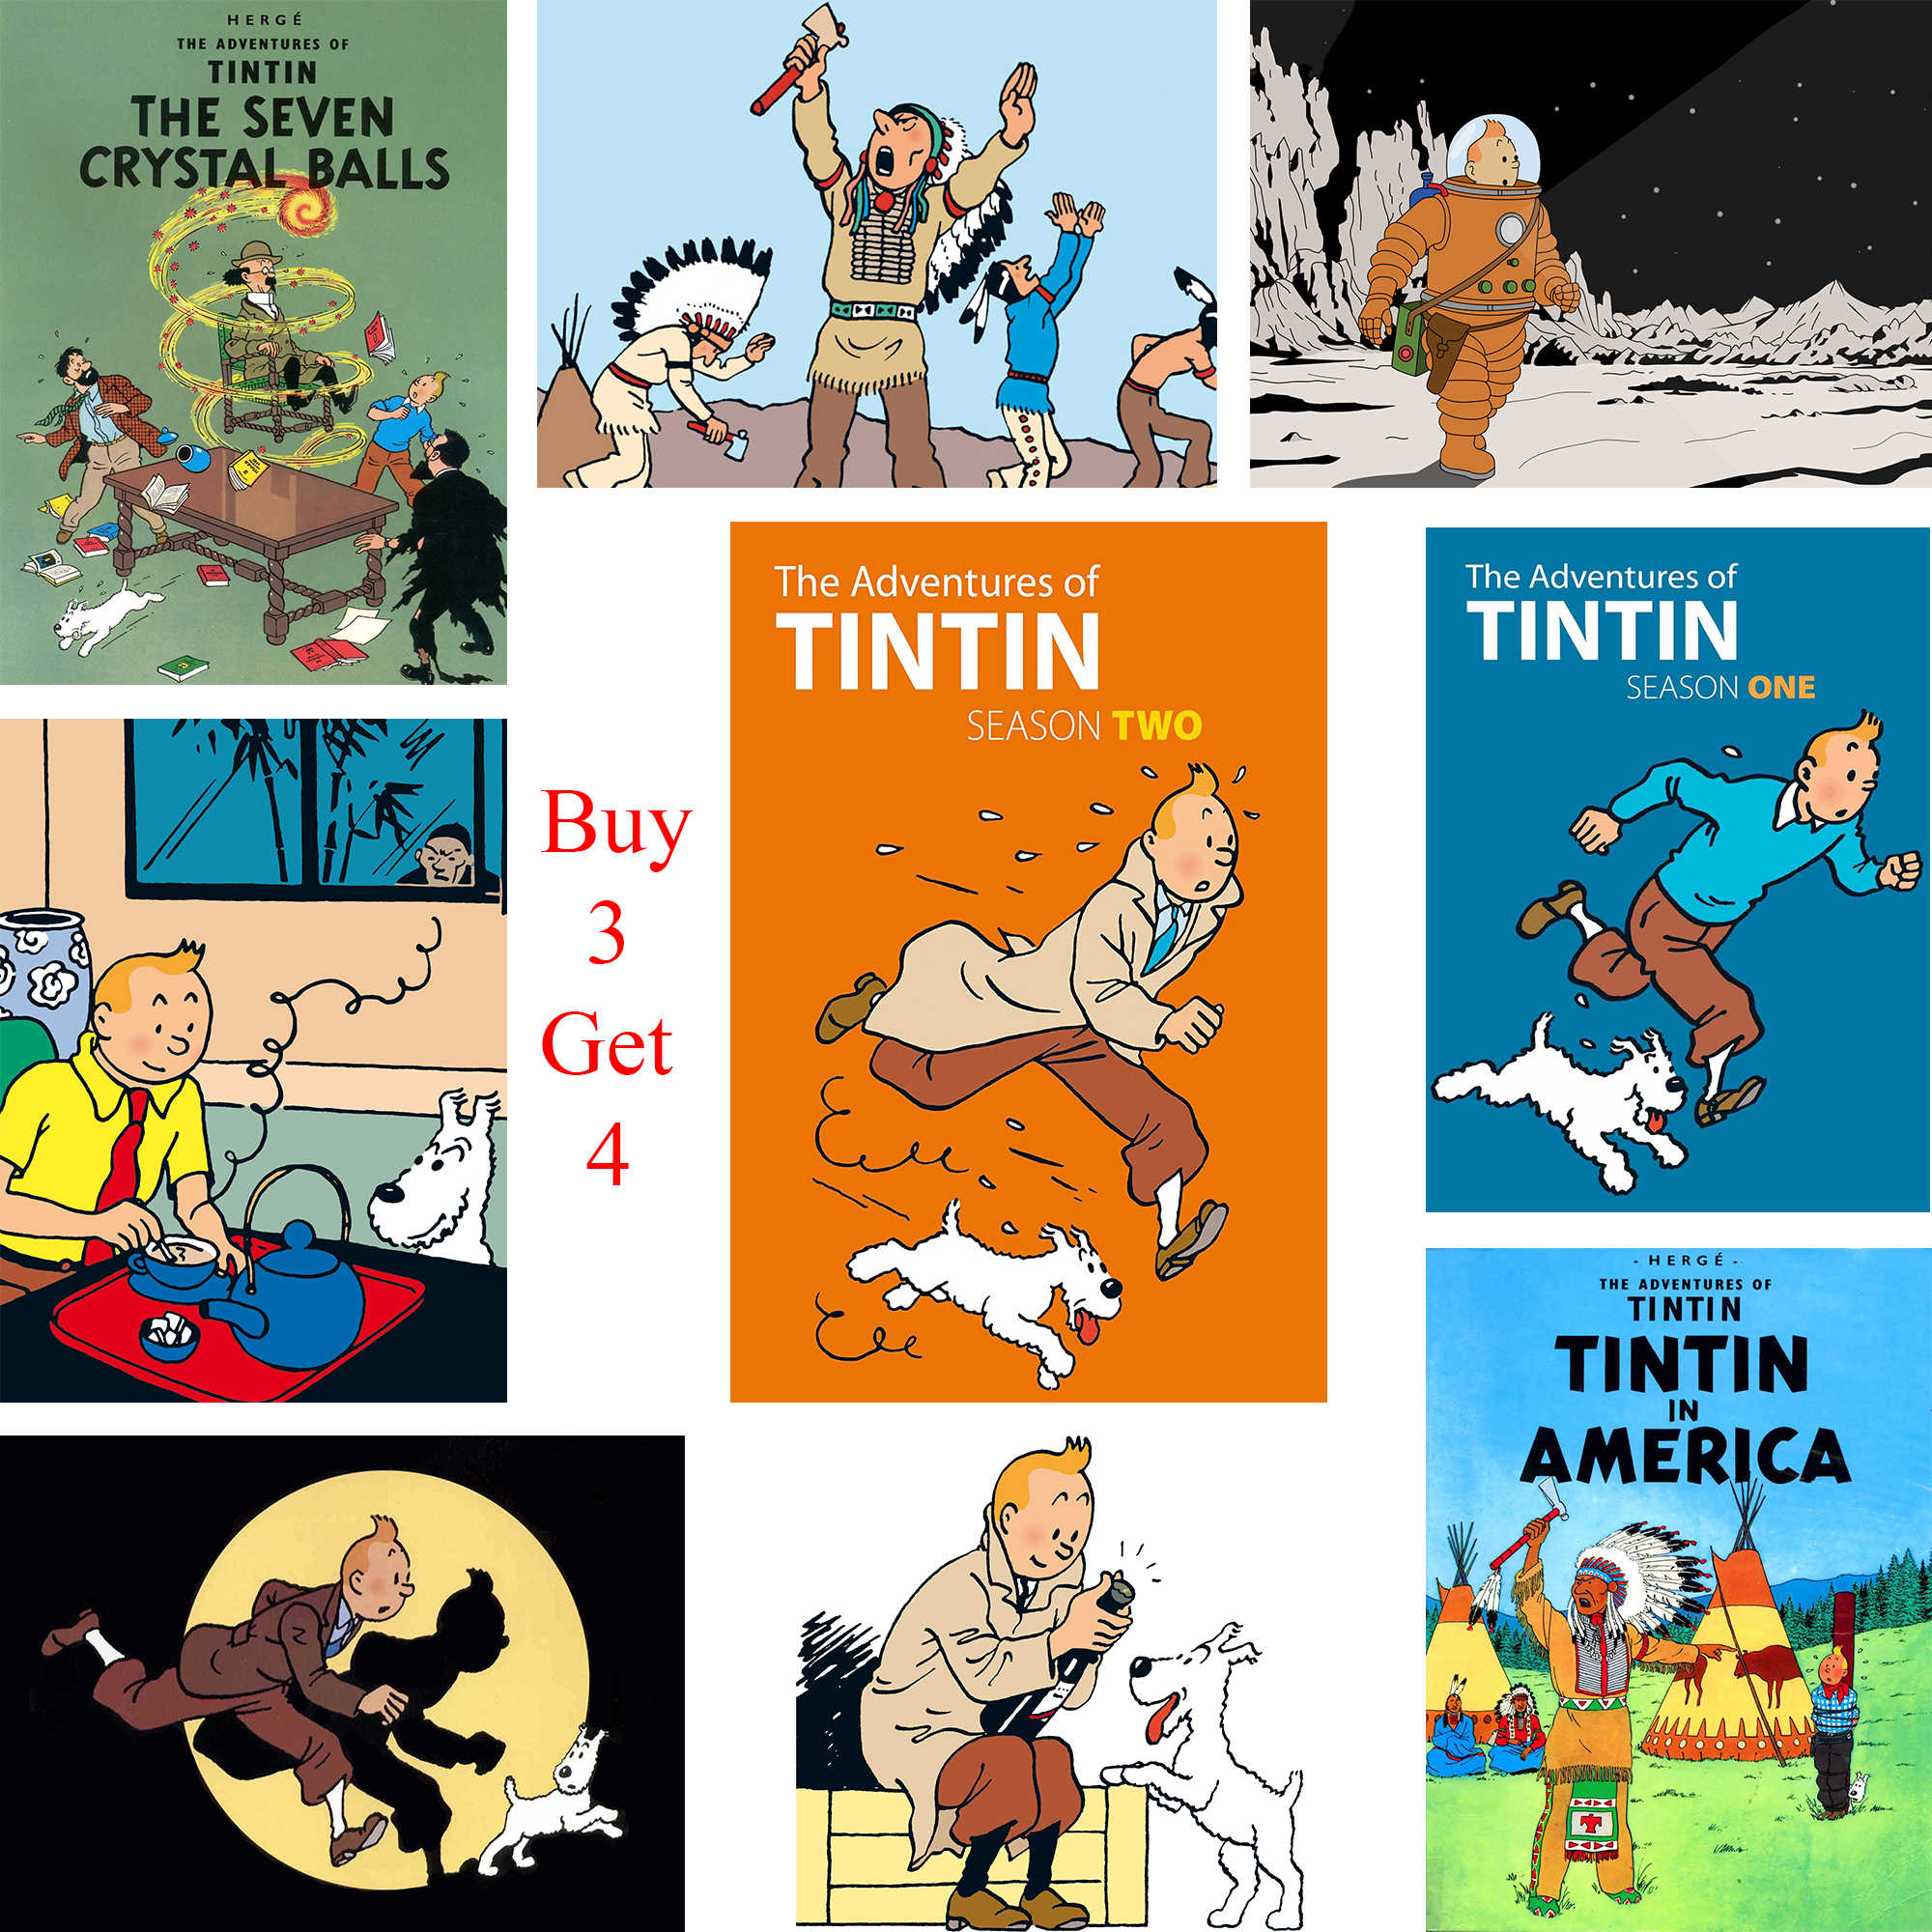 The Adventures of Tintin Poster Cartoon Wandaufkleber Weiß Gestrichenes Papier Prints Klar Bild Dekoration Schlafzimmer Bar